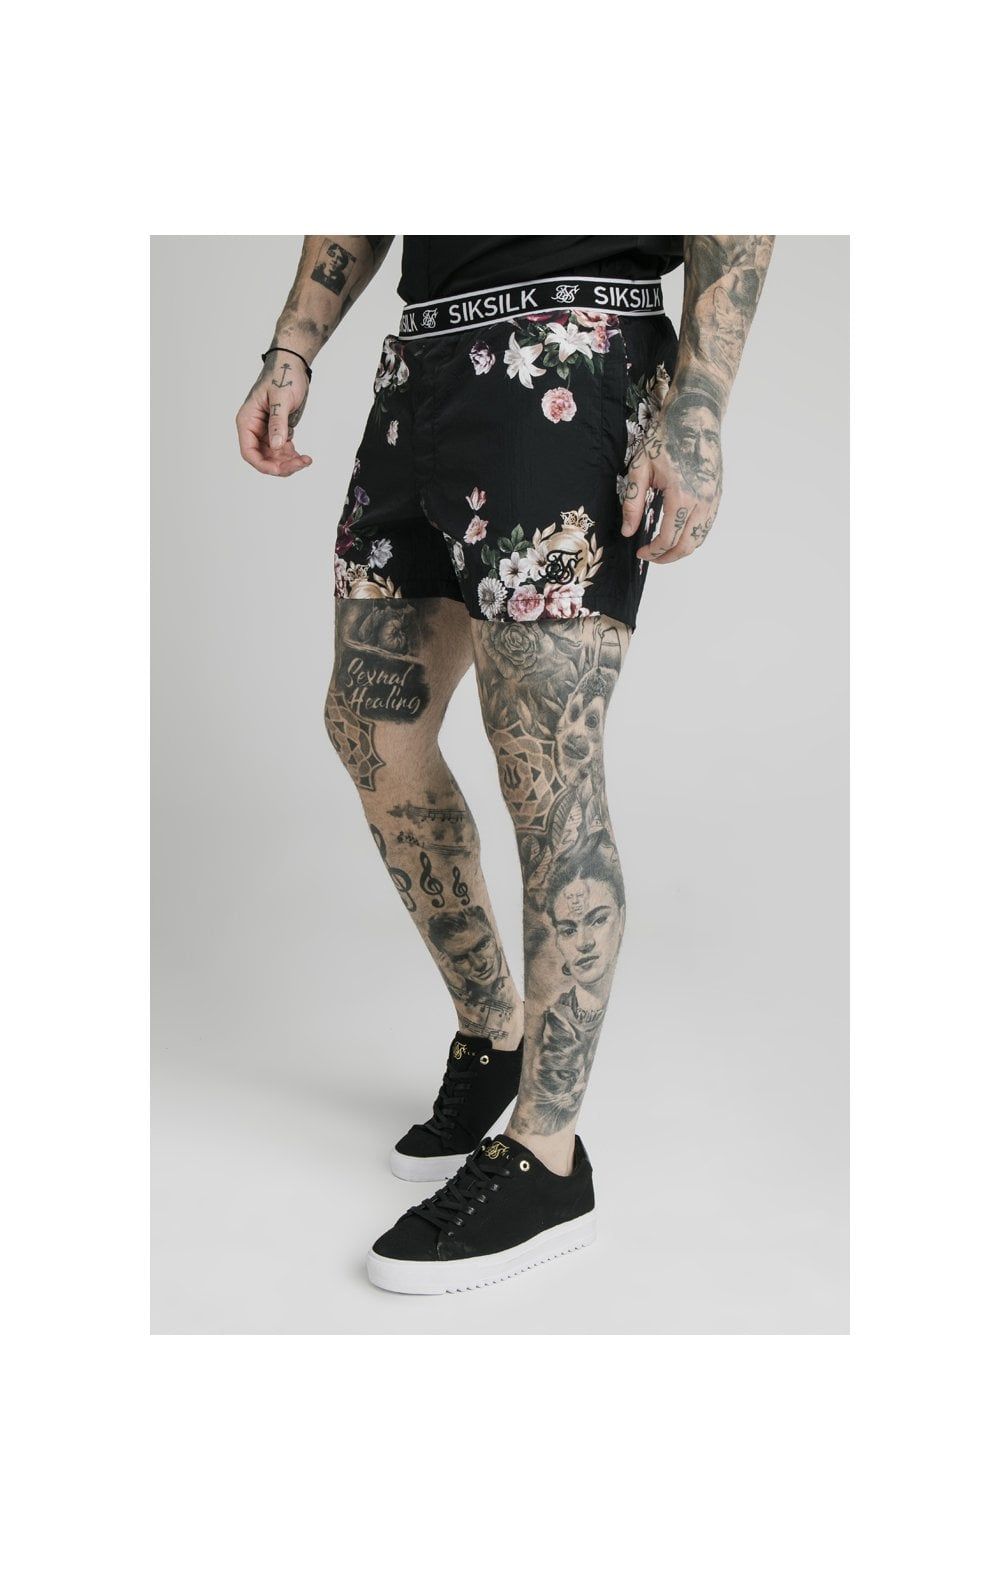 SikSilk Prestige Floral Swim Shorts - Black (2)